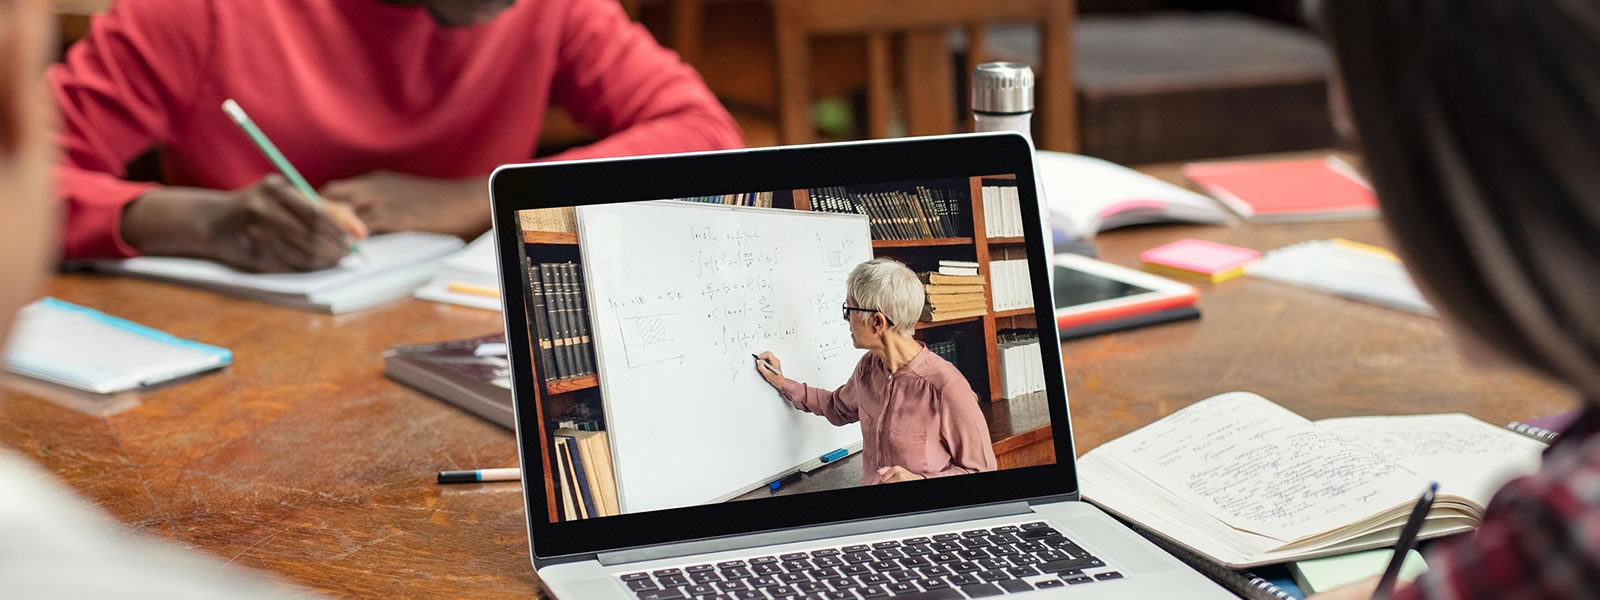 3 Keys to Building Online Education Experiences